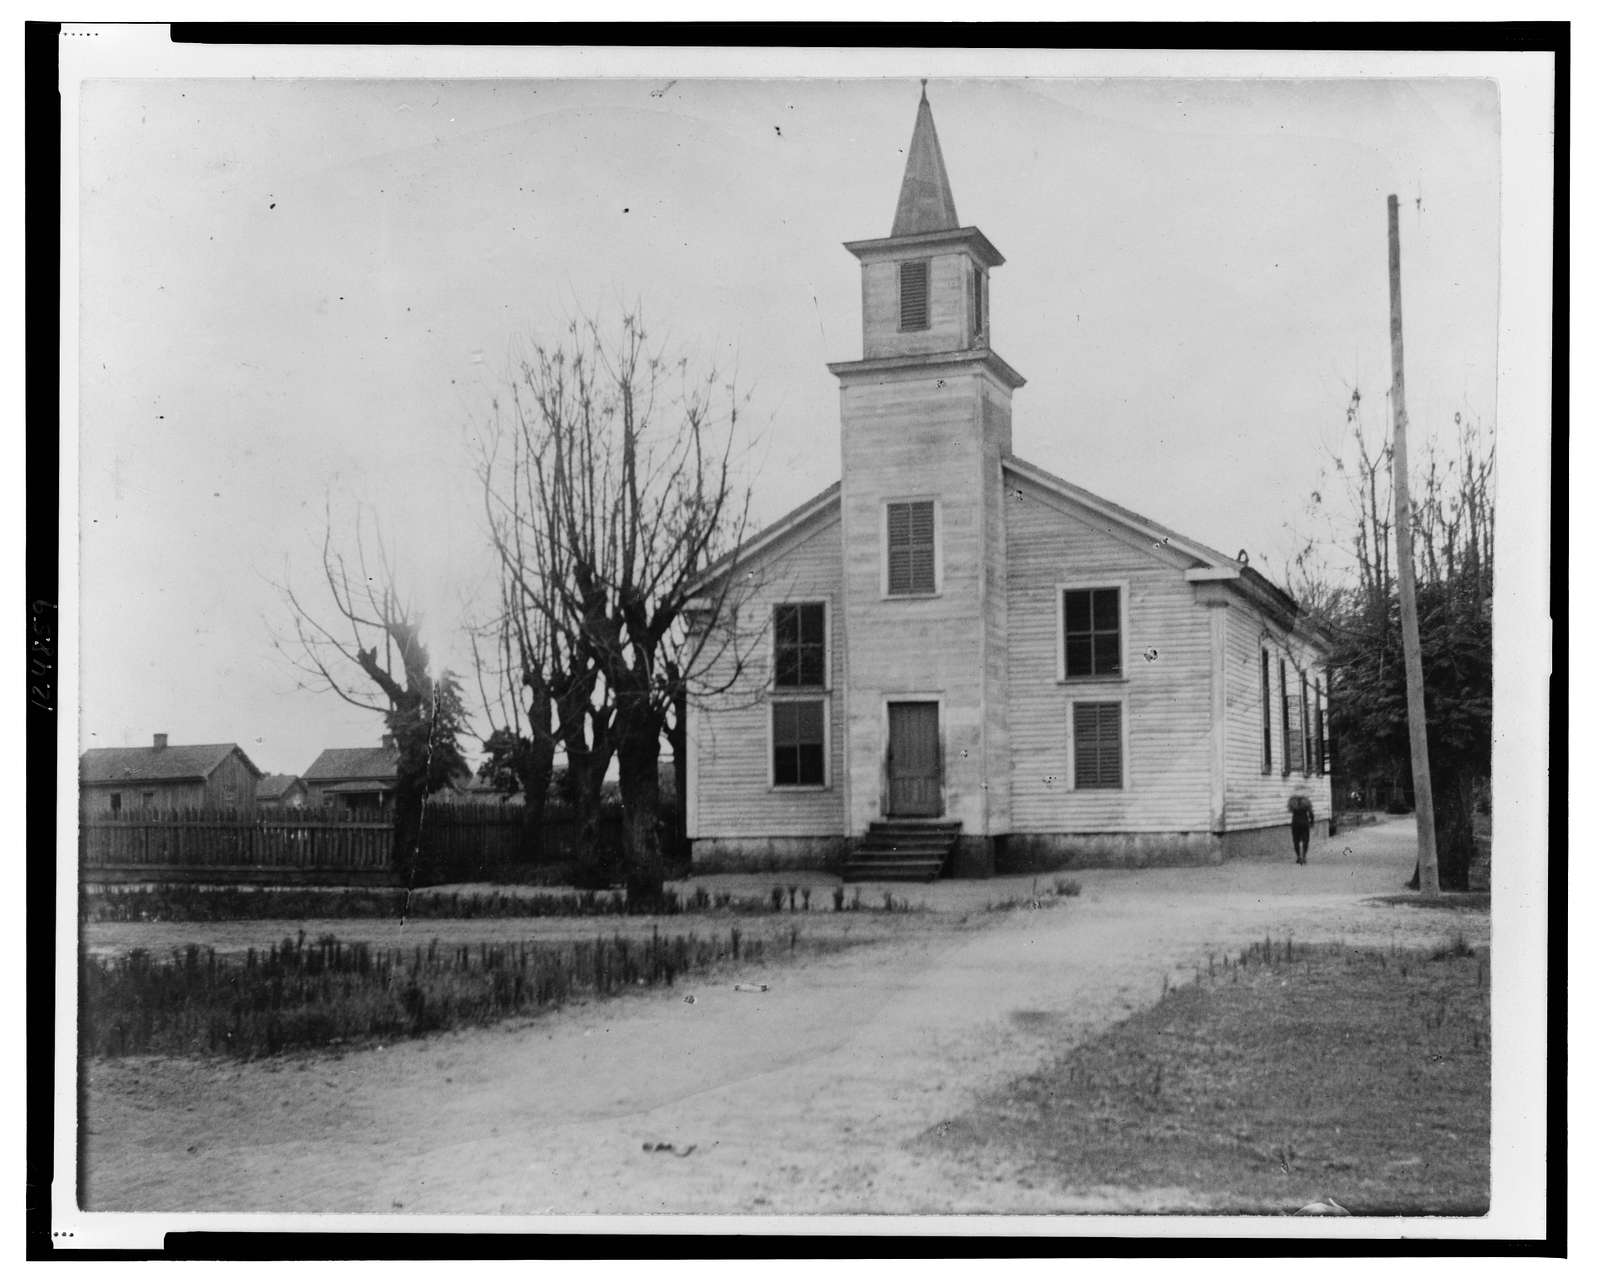 [Exterior view of church]